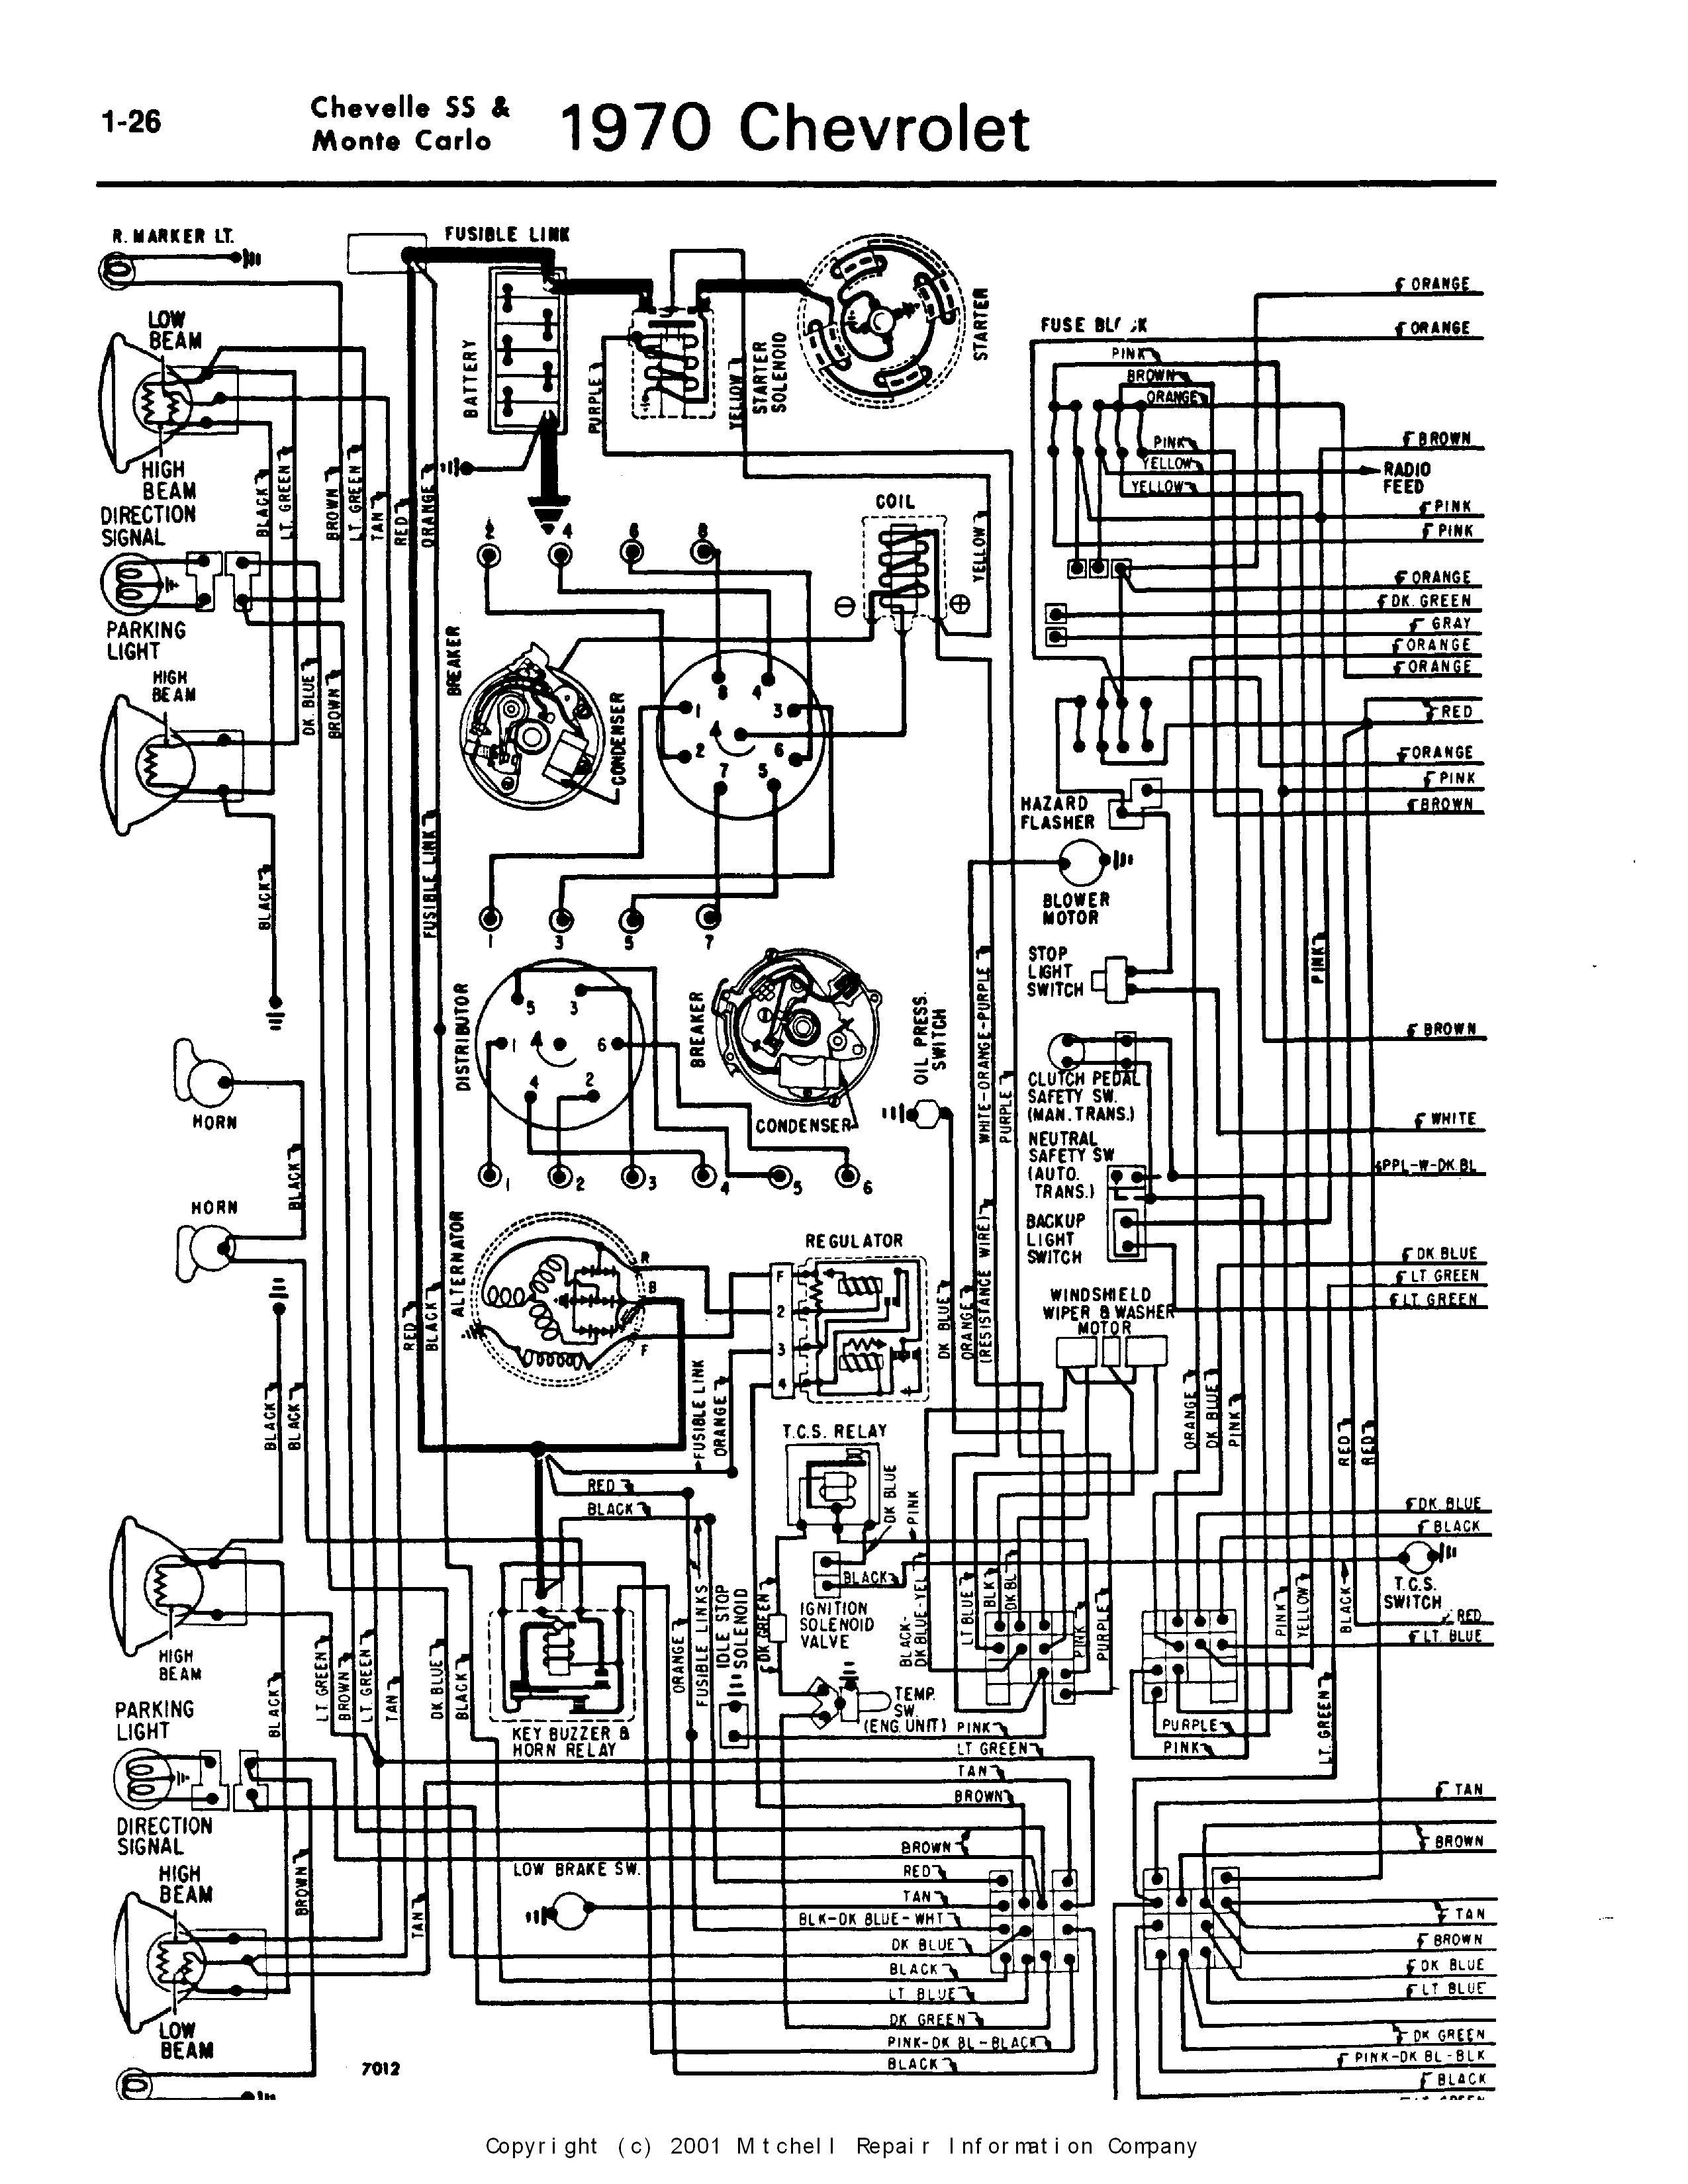 1966 Chevy C10 Wiring Harness Free Download Diagram - Wiring ... on 2004 chevy truck wiring diagram free, 1996 chevy truck wiring diagram free, 1988 chevy truck wiring diagram free, 1978 chevy truck wiring diagram free, 1957 chevy truck wiring diagram free, 1967 chevy truck wiring diagram free, 1974 chevy truck wiring diagram free, 1979 chevy truck wiring diagram free,